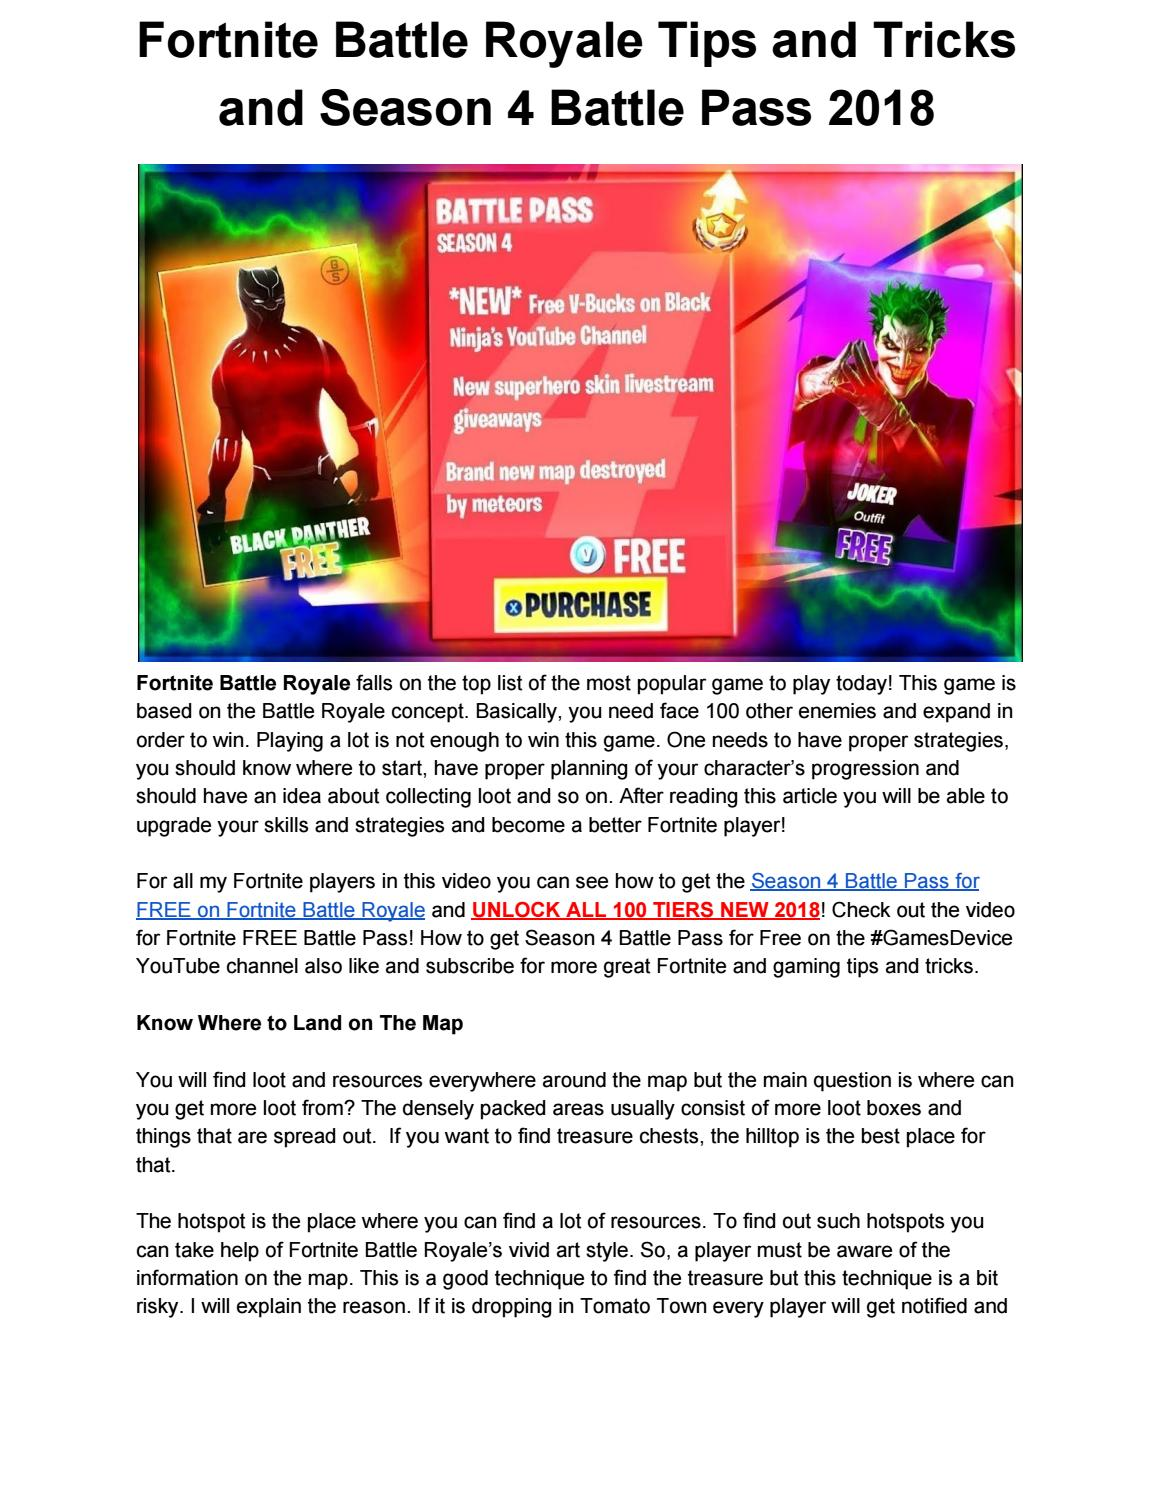 fortnite battle royale tips and tricks and season 4 battle pass 2018 by mike bike issuu - like and subscribe fortnite